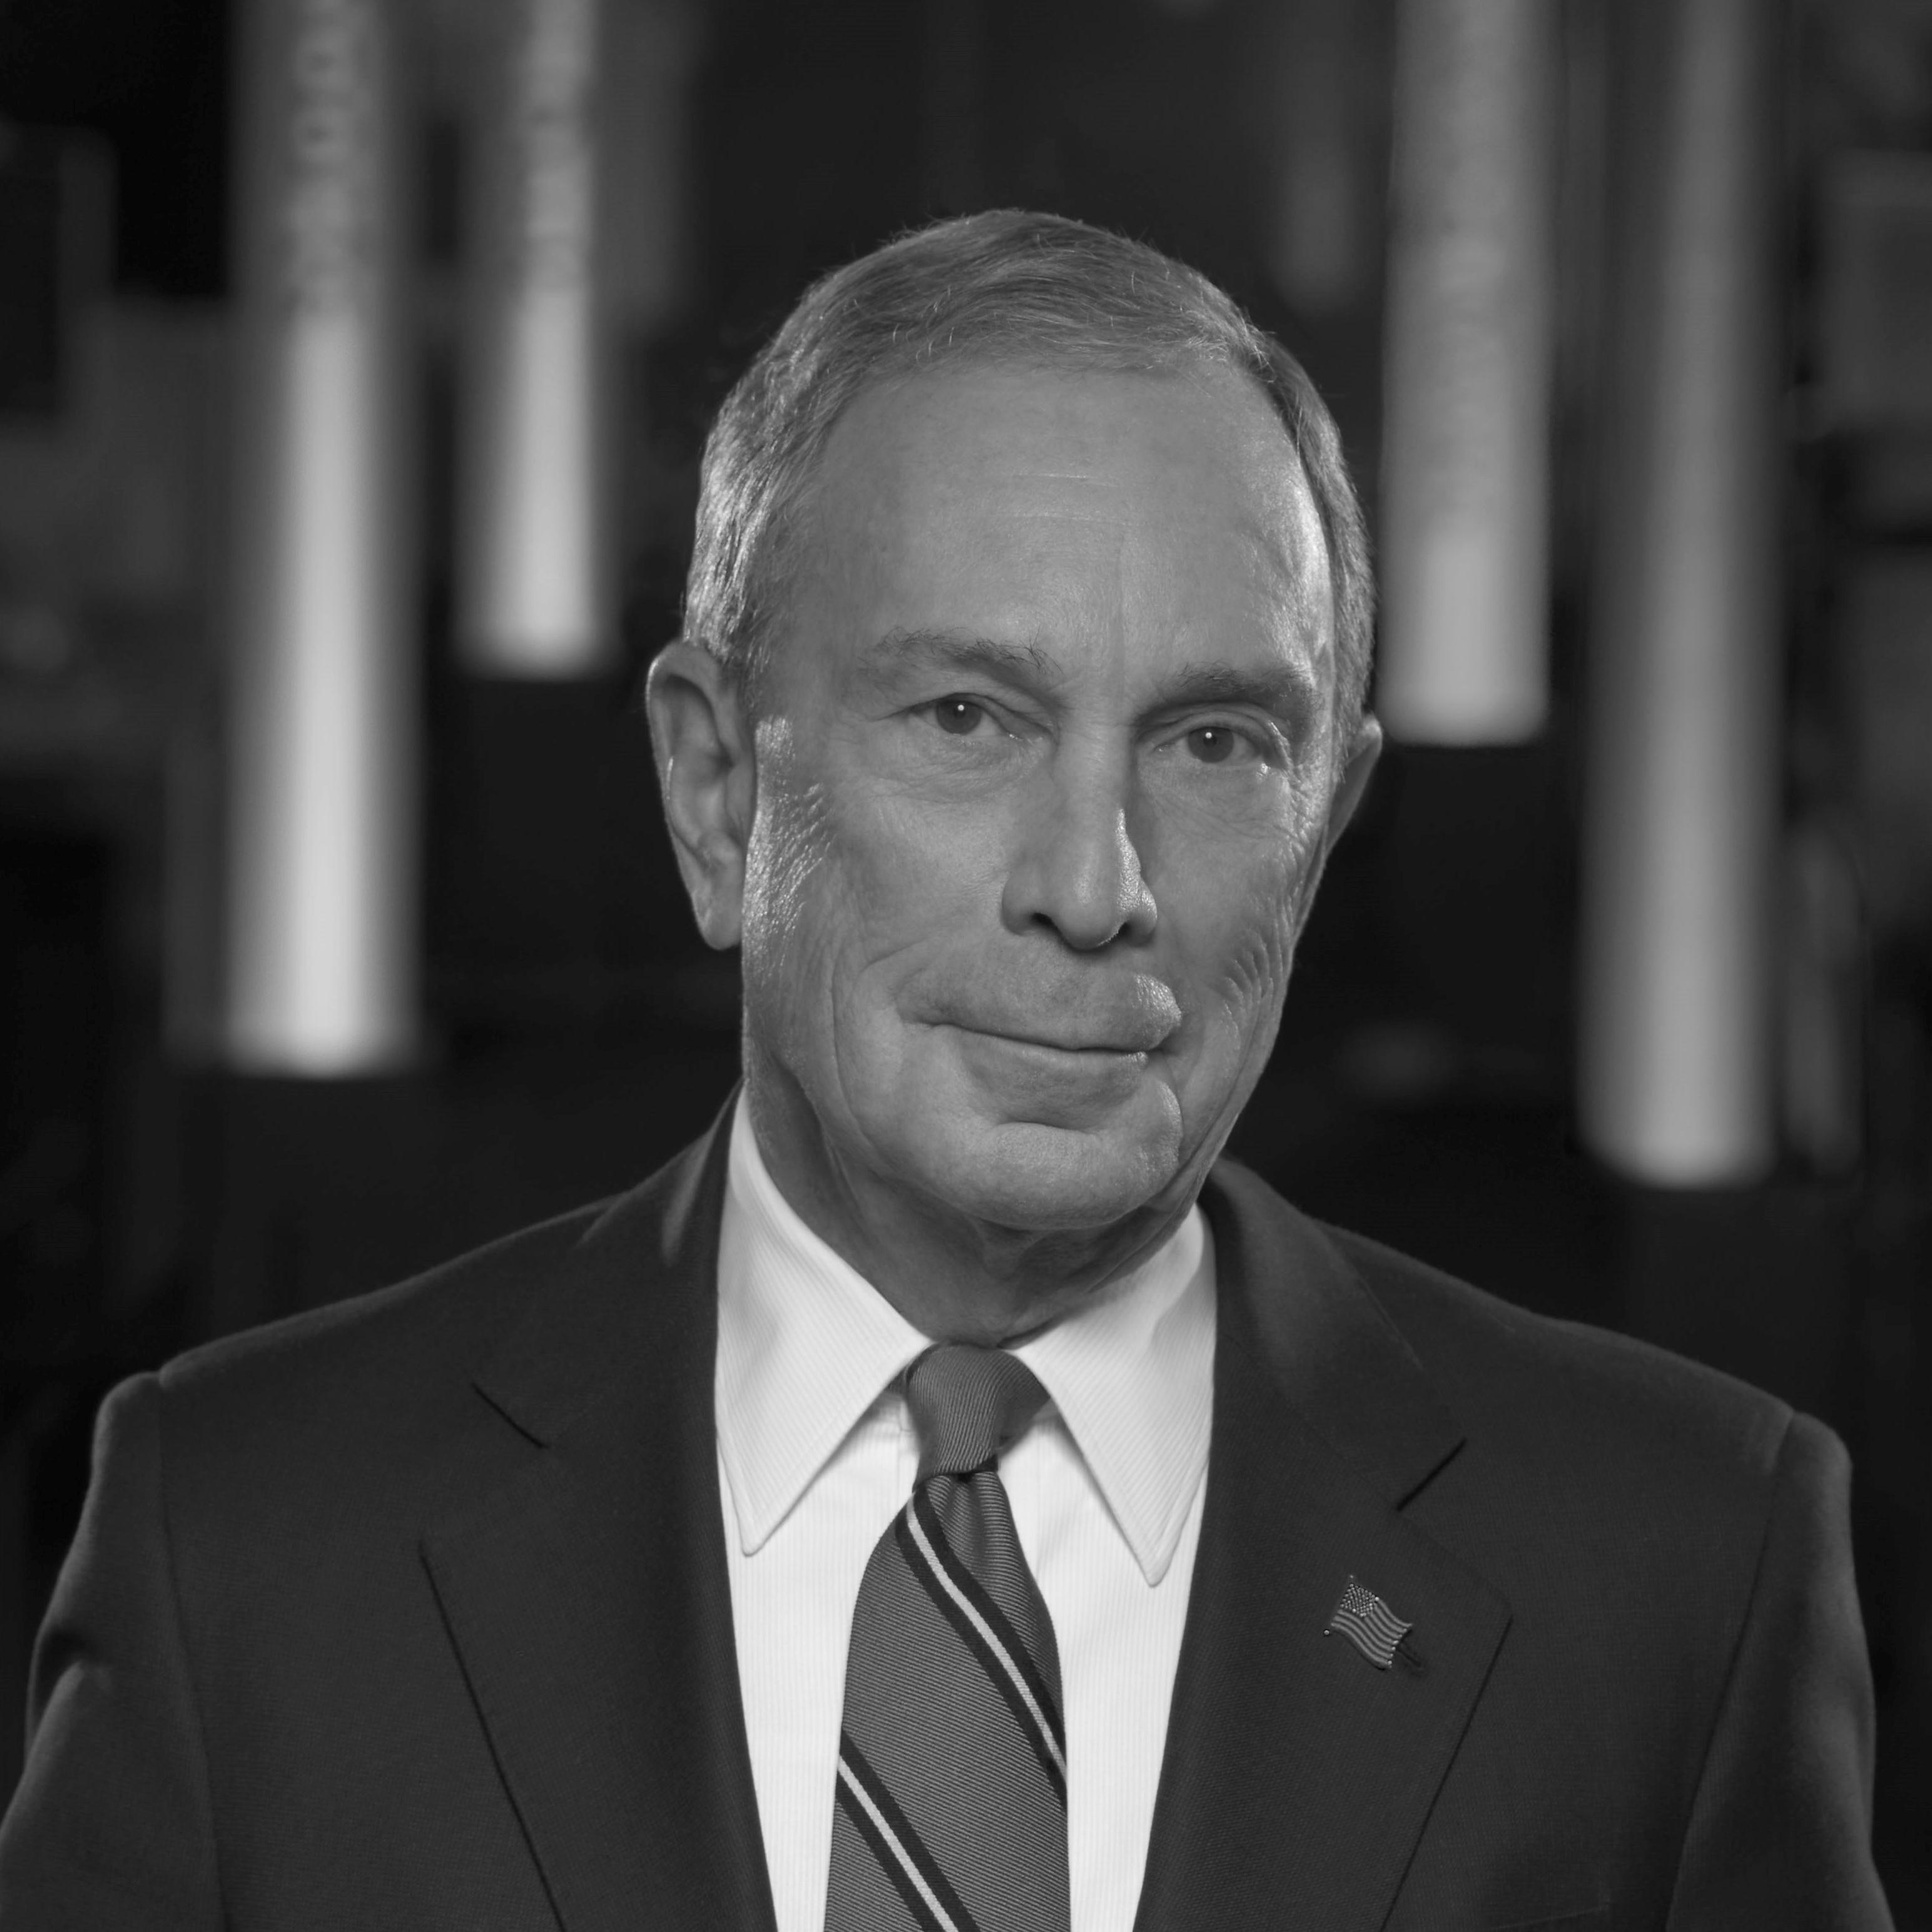 Mike Bloomberg headshot_HR (2).jpg